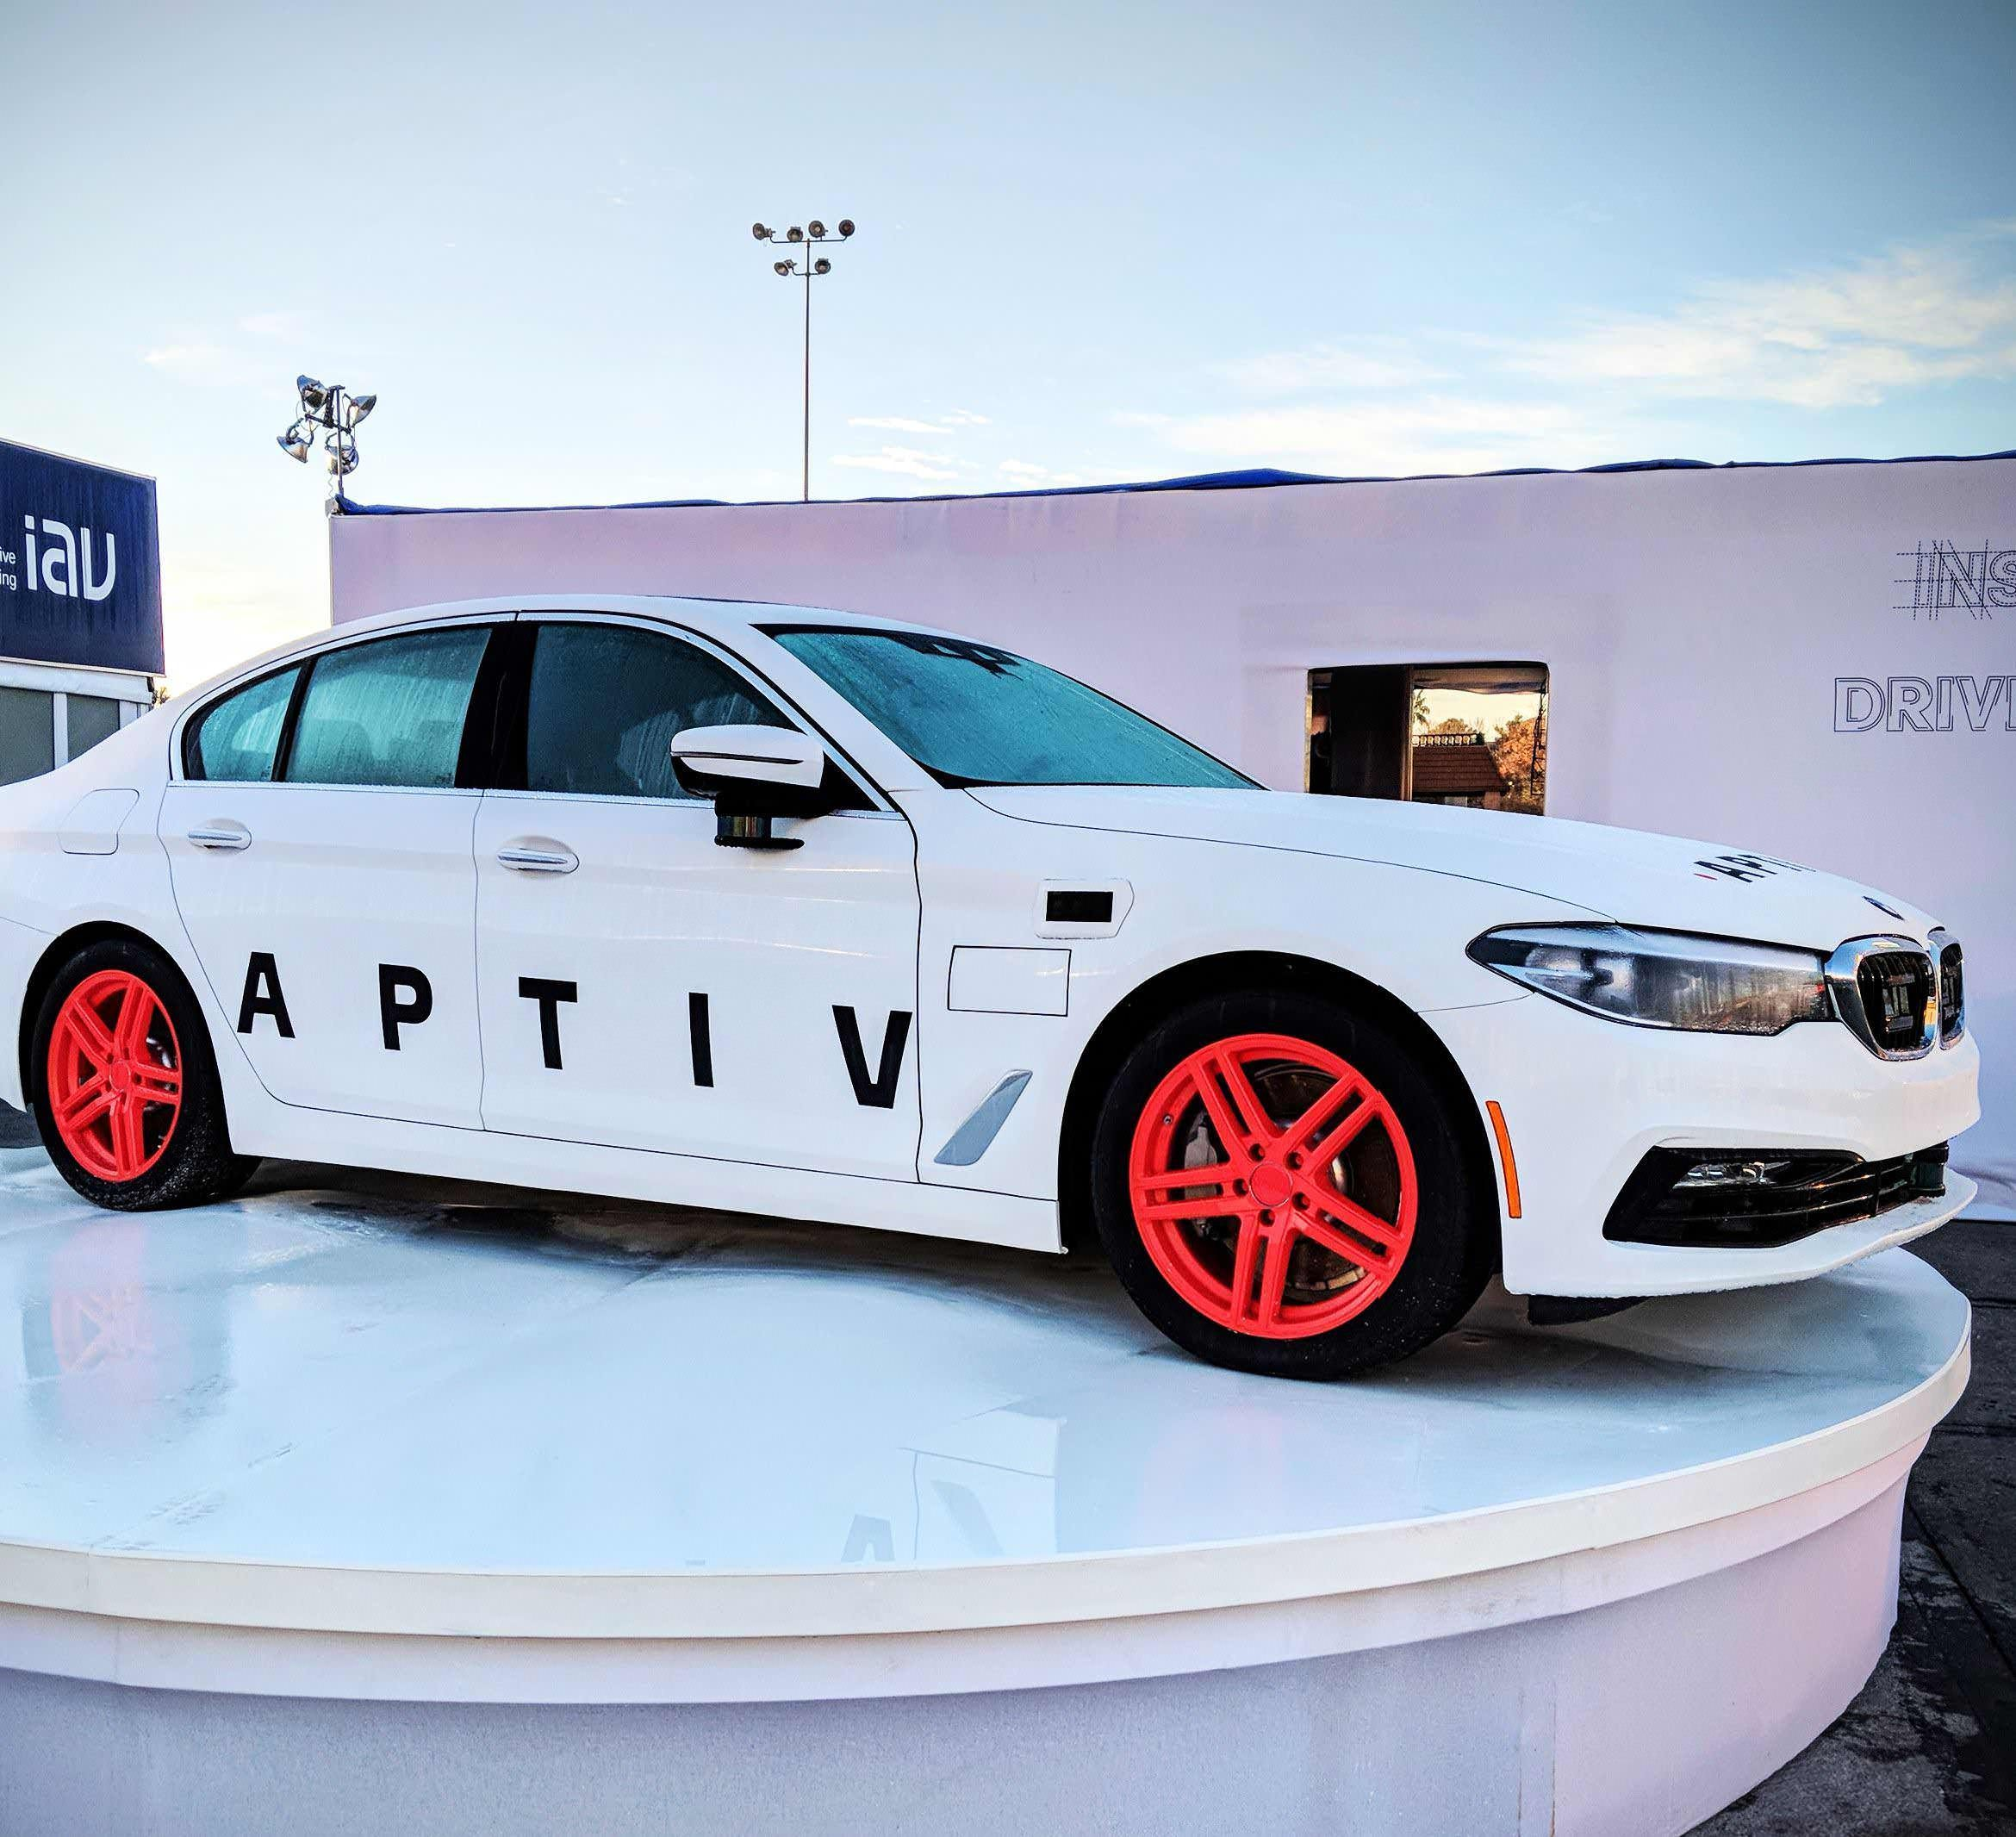 LYFT, APTIV To Launch Self-Driving Car Program In Las Vegas